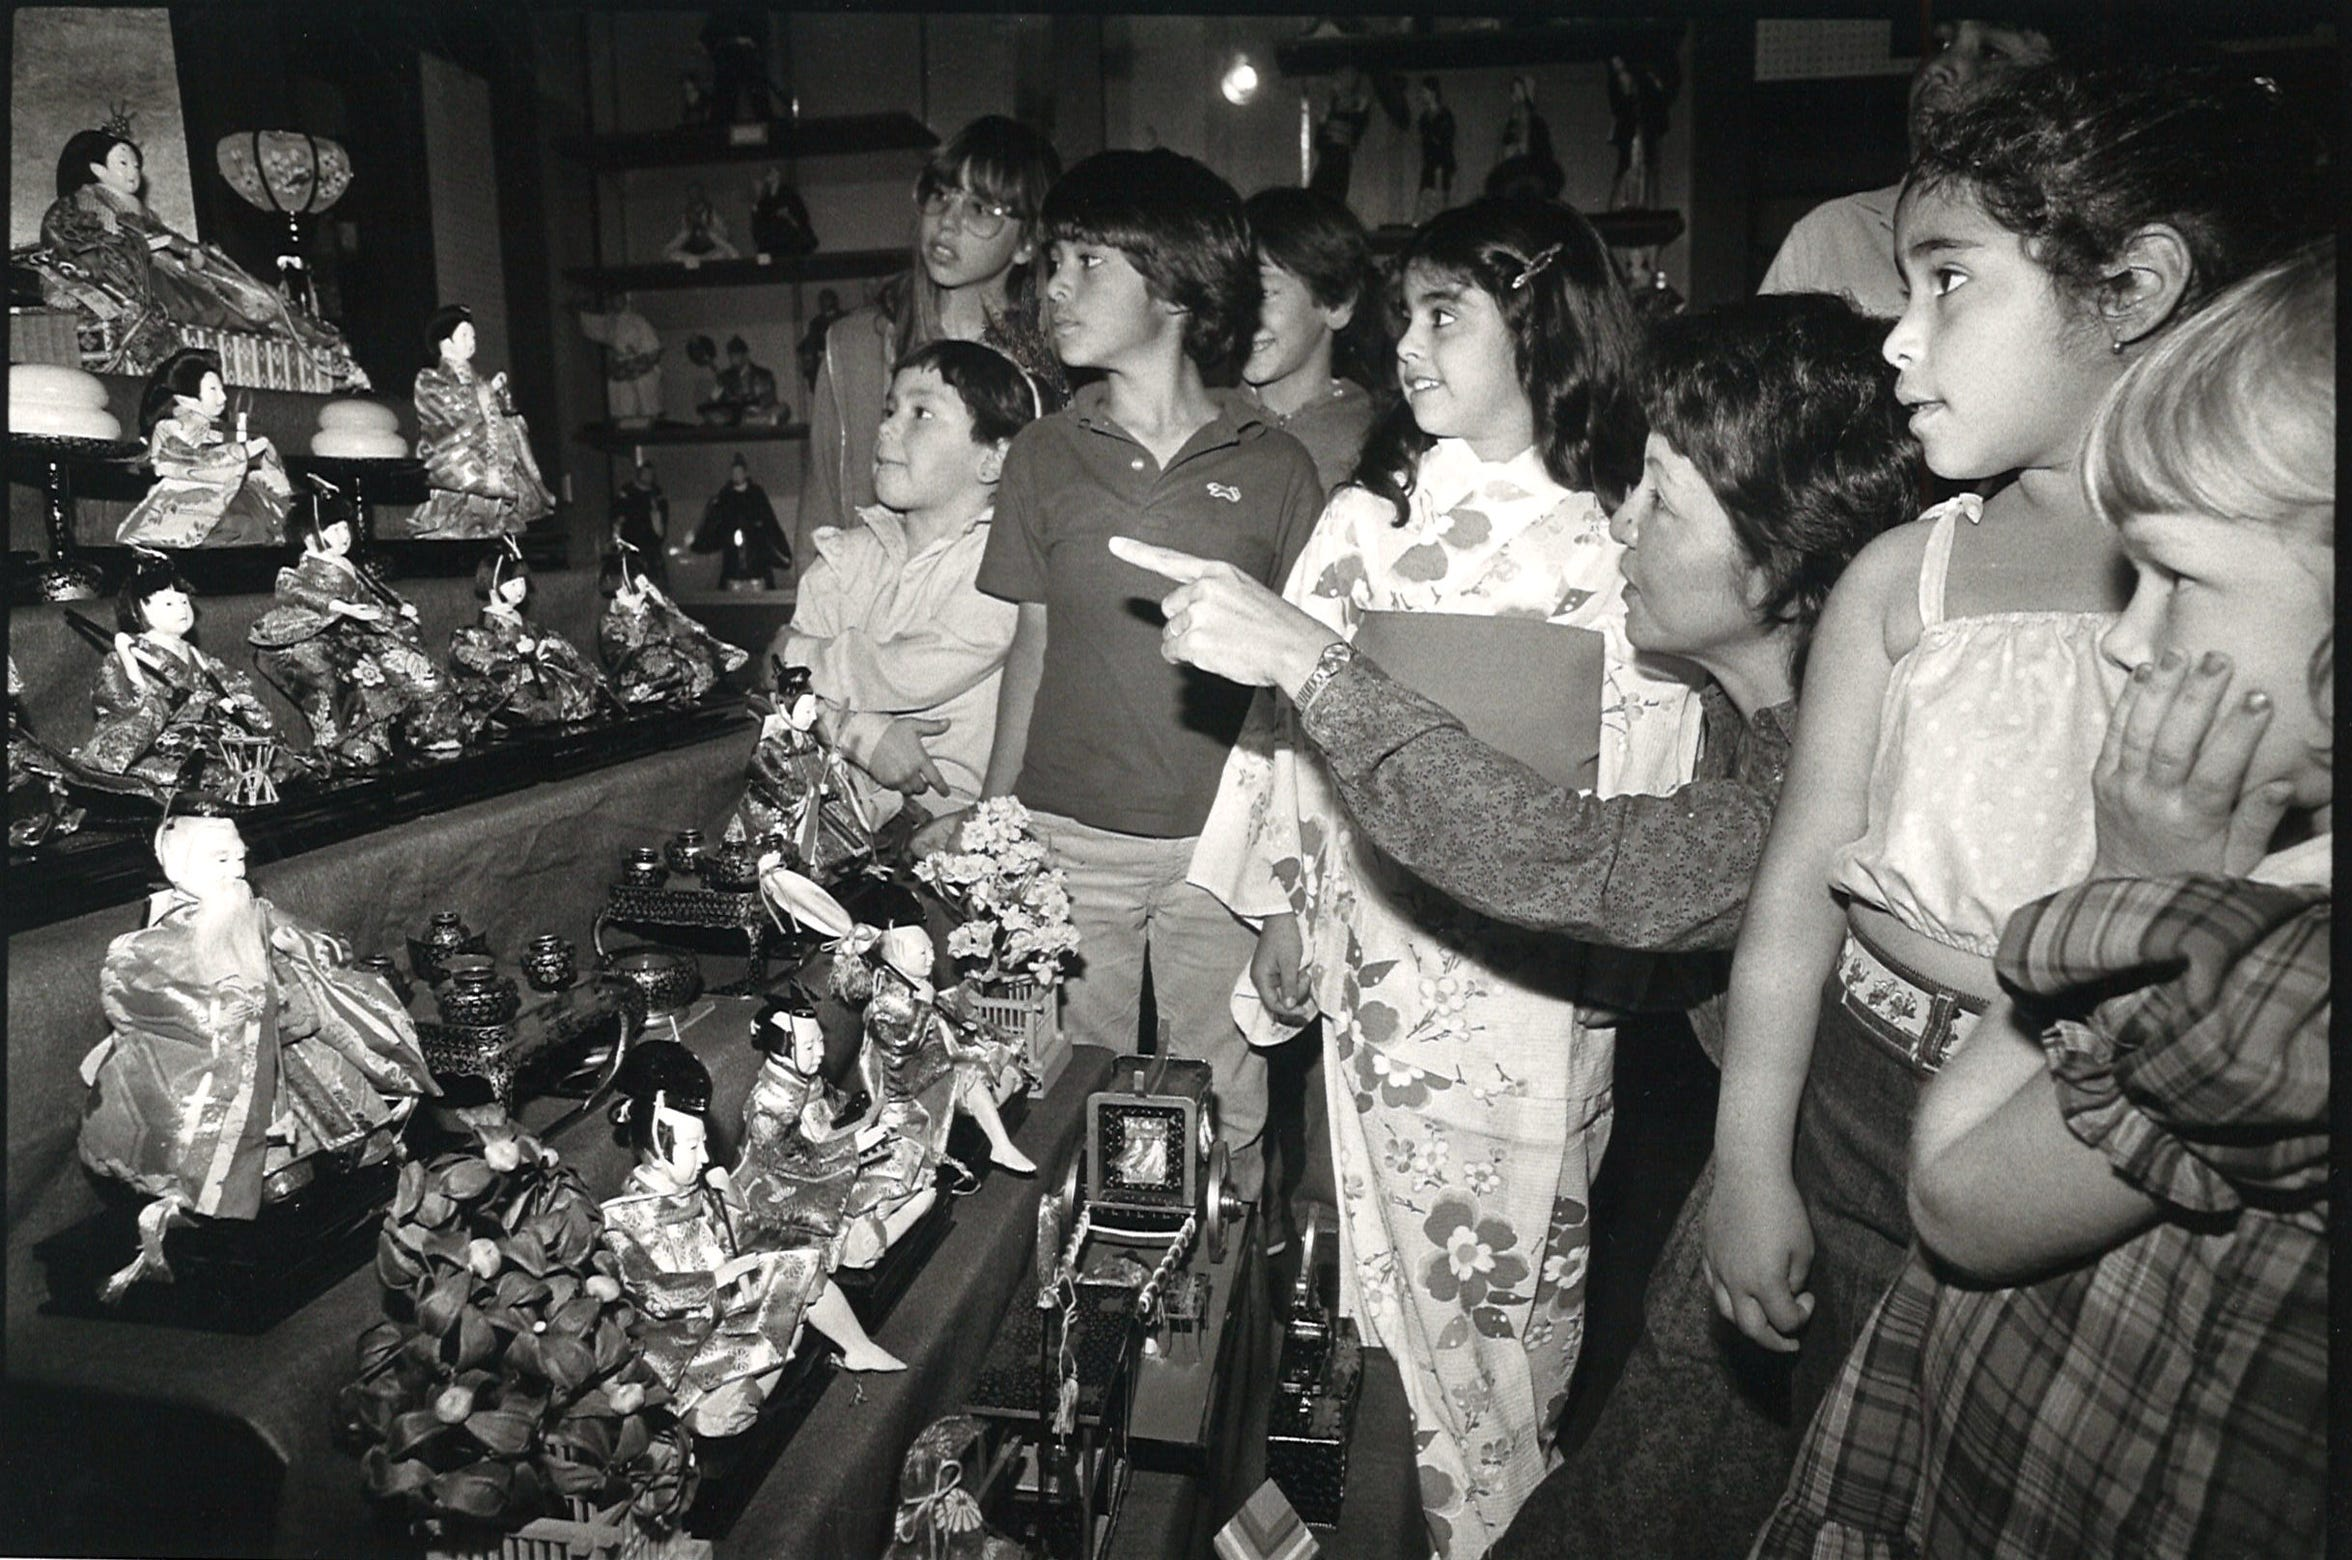 Hisako Ochiai, museum education director, explains the significance of figures on display at what is now called the Museum of Asian Cultures on March 4, 1984.